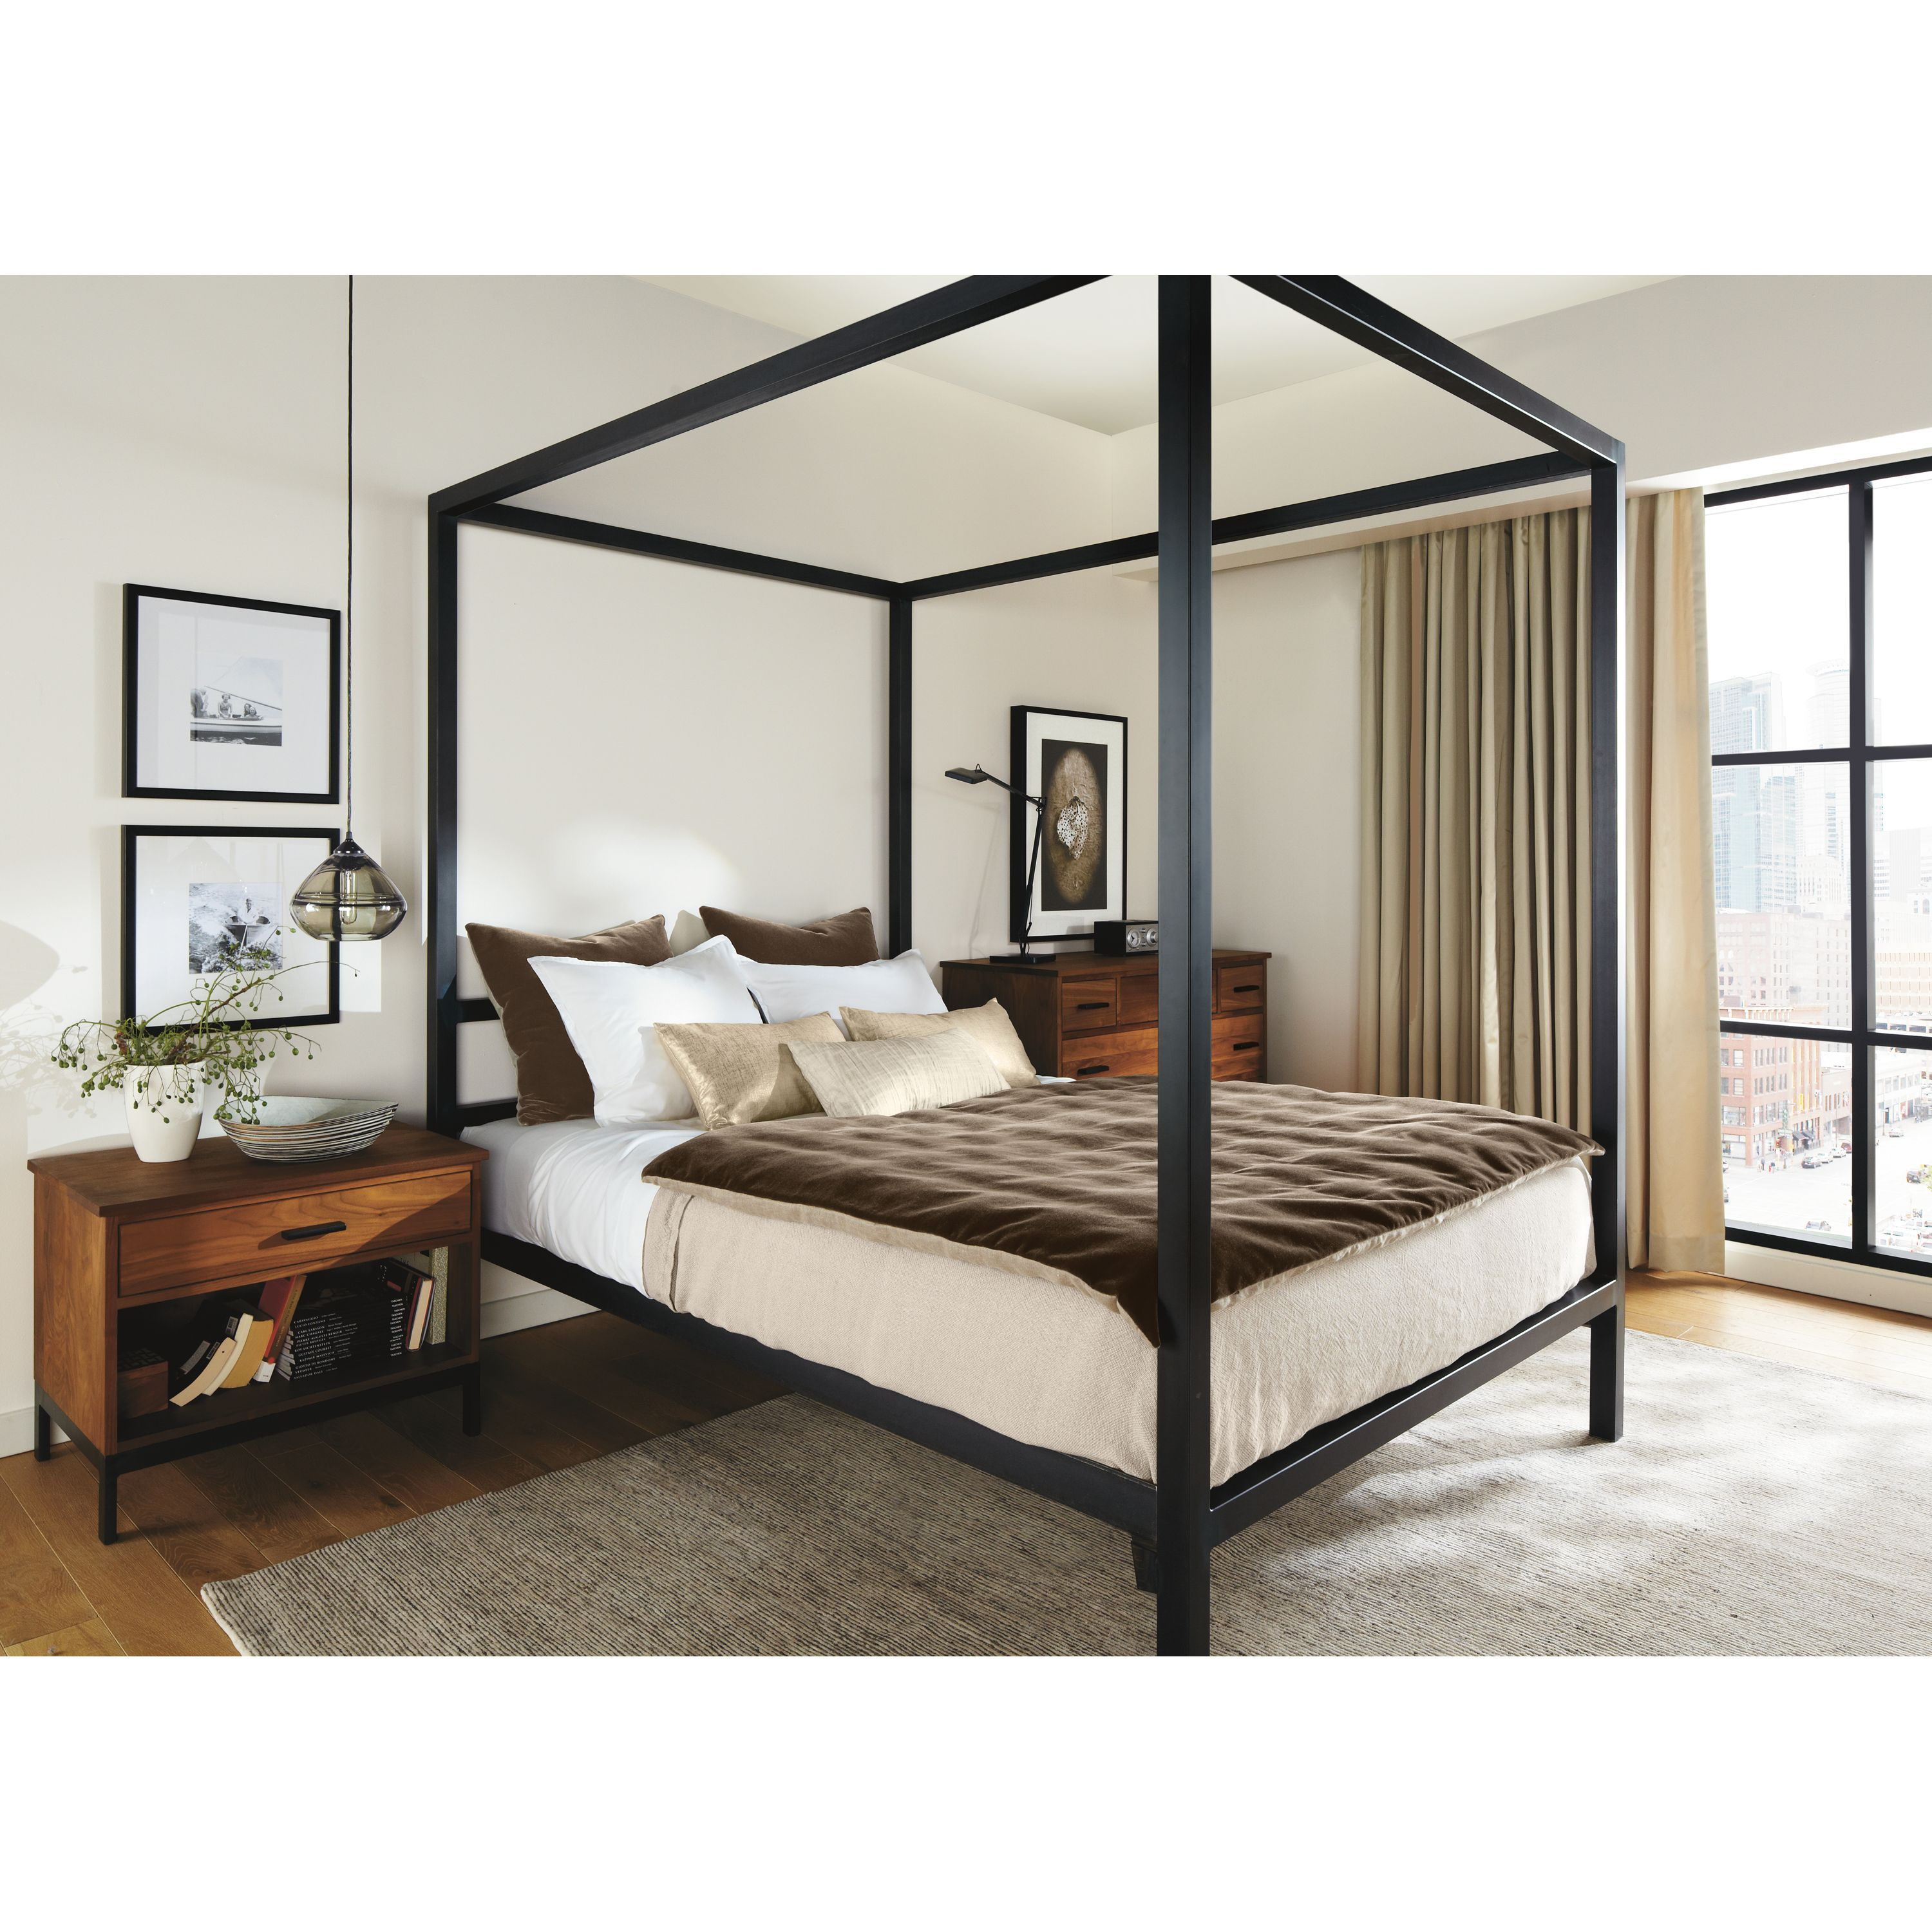 Room Board Architecture Bed Products Bedroom Bed Master